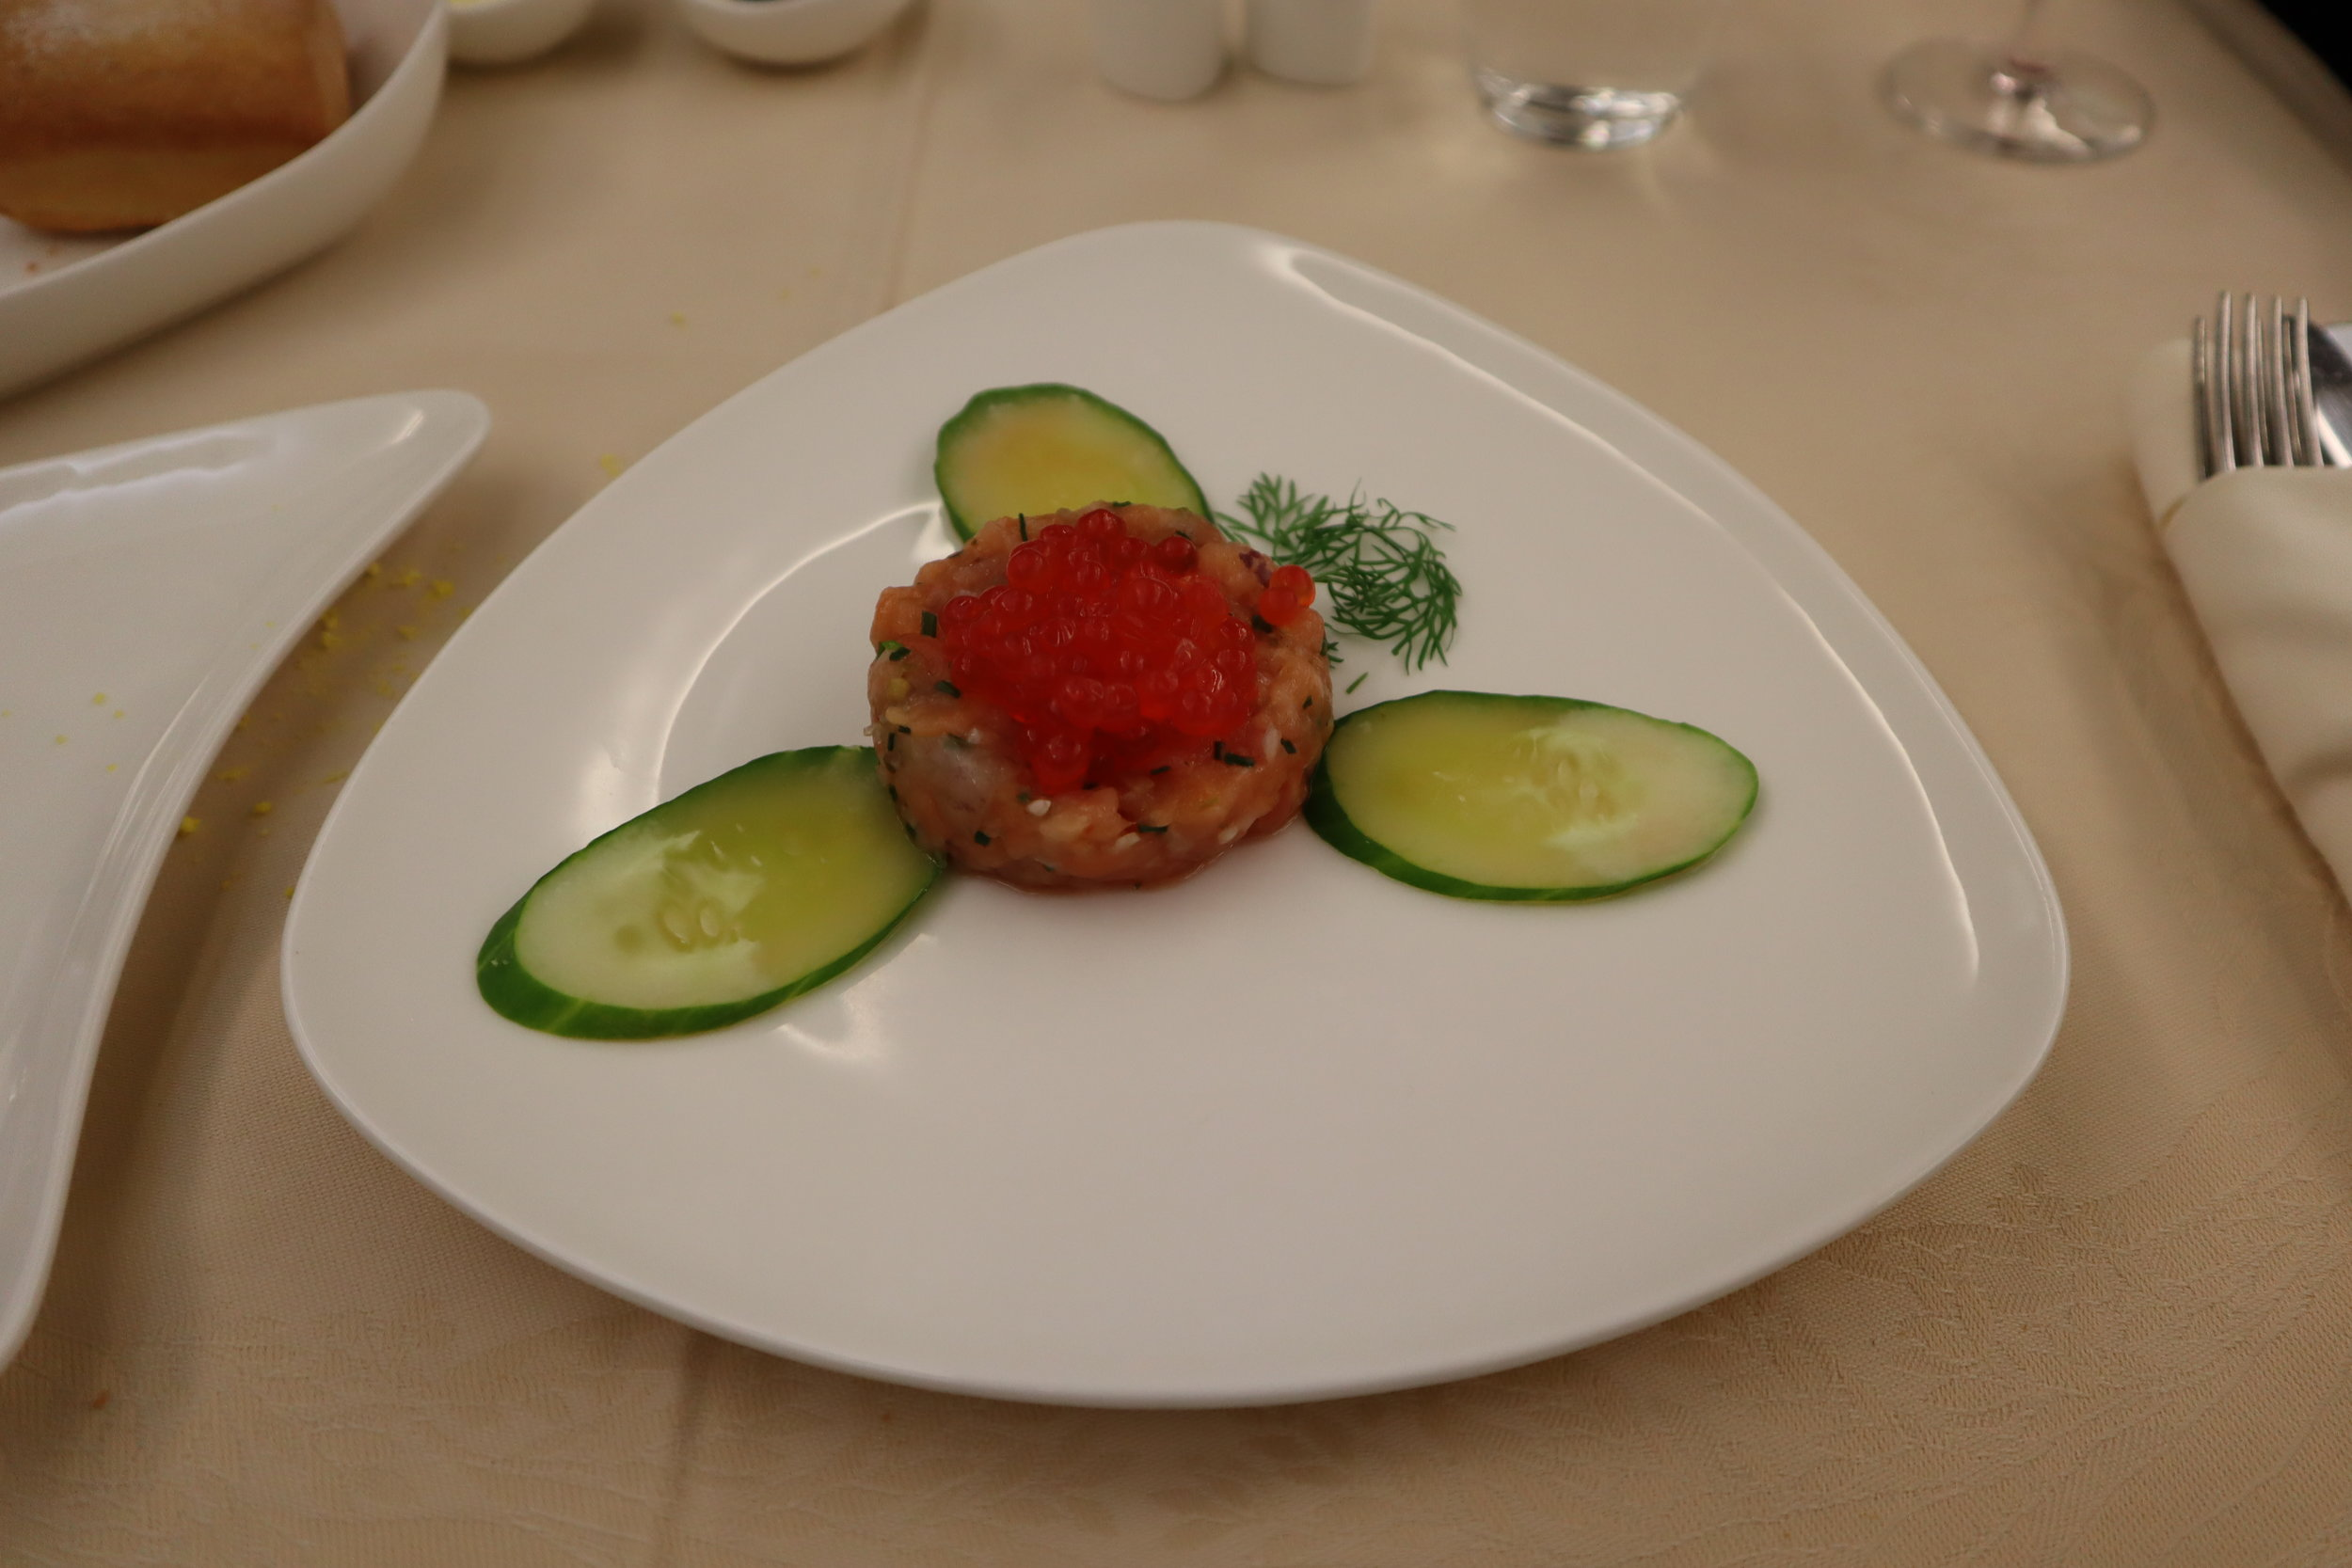 Asiana Airlines First Class – Salmon tartare with salmon roe